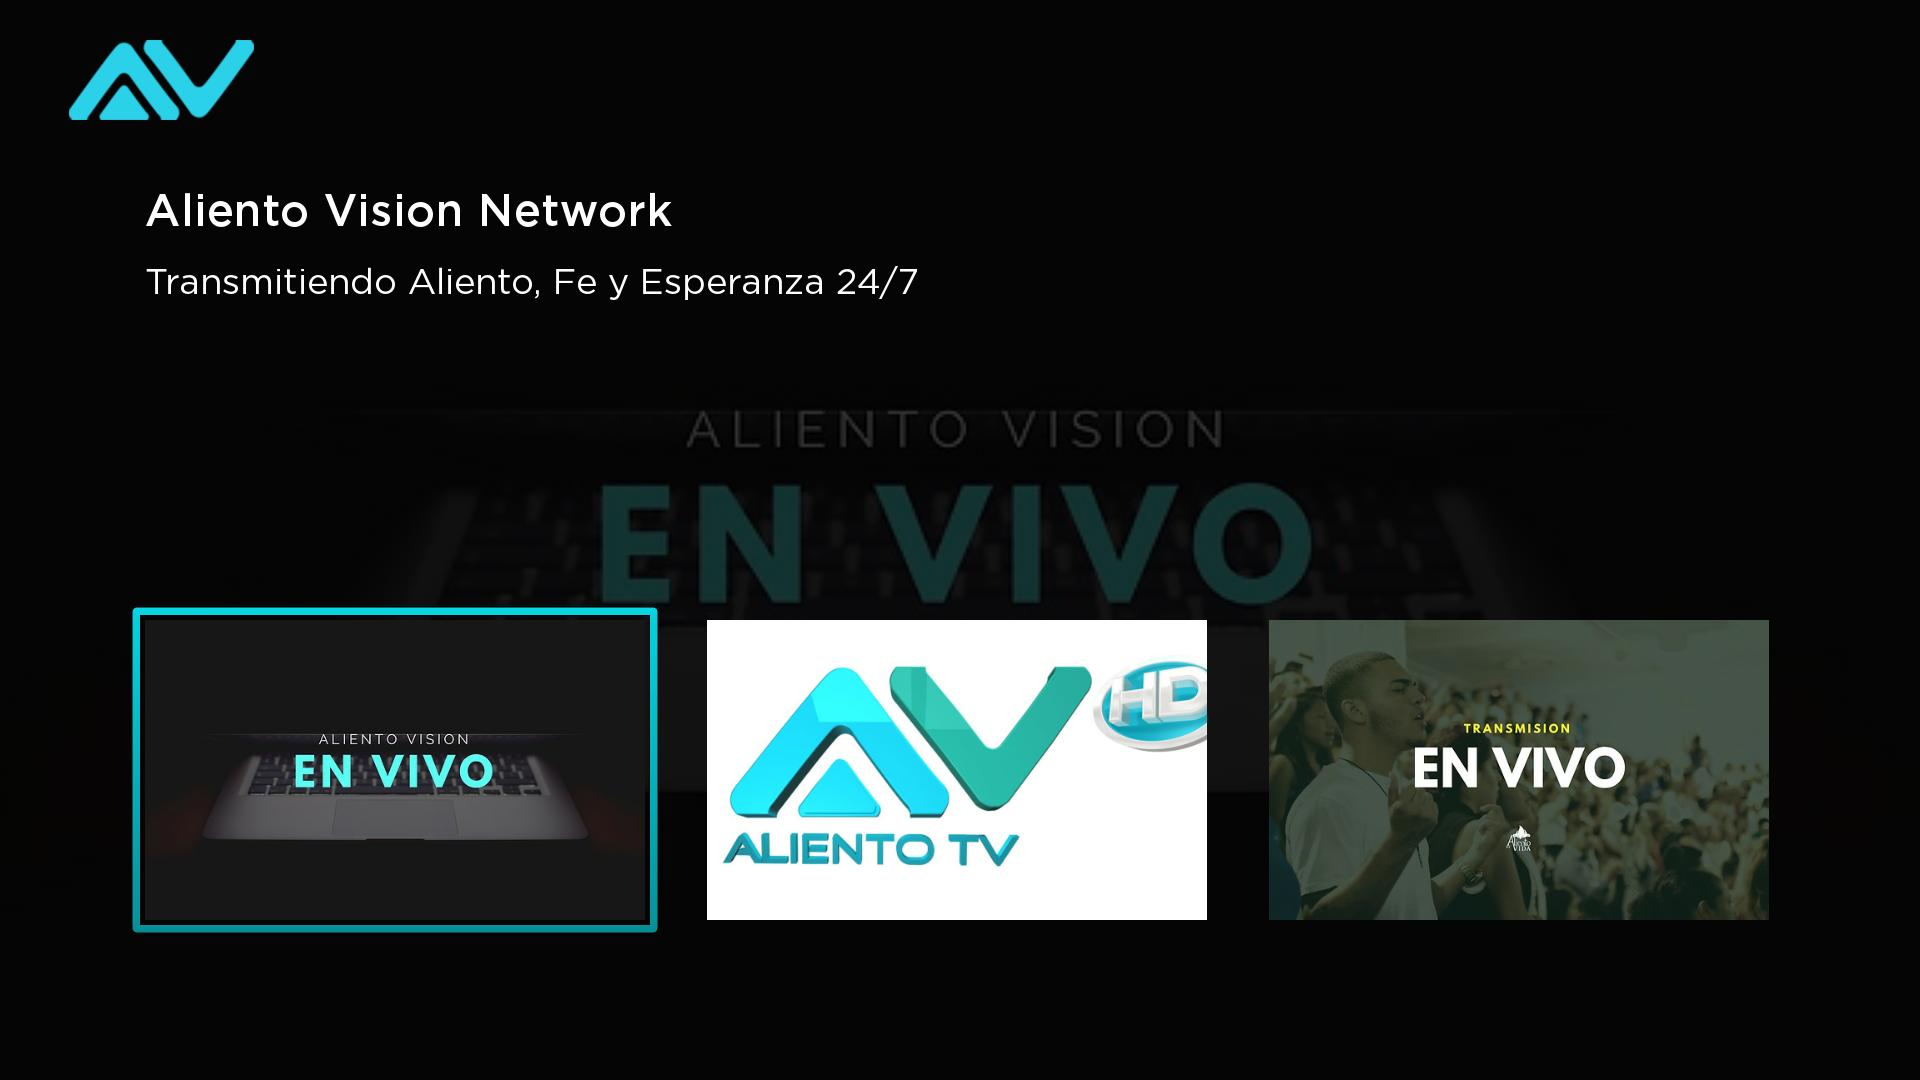 Aliento Vision Network Screenshot 001